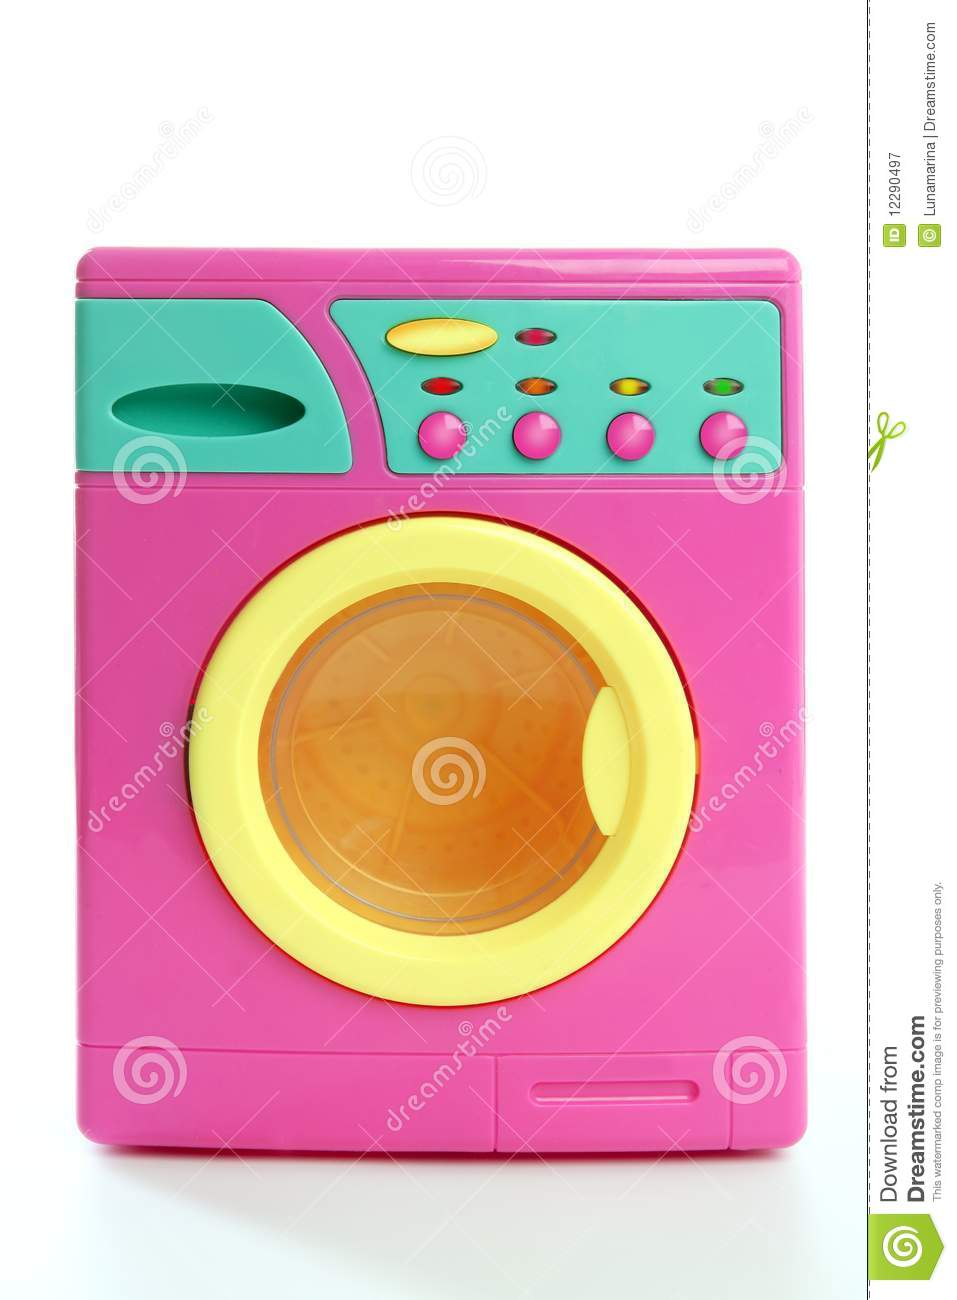 Colorful Pink Yellow Clothes Toy Washing Machine Stock